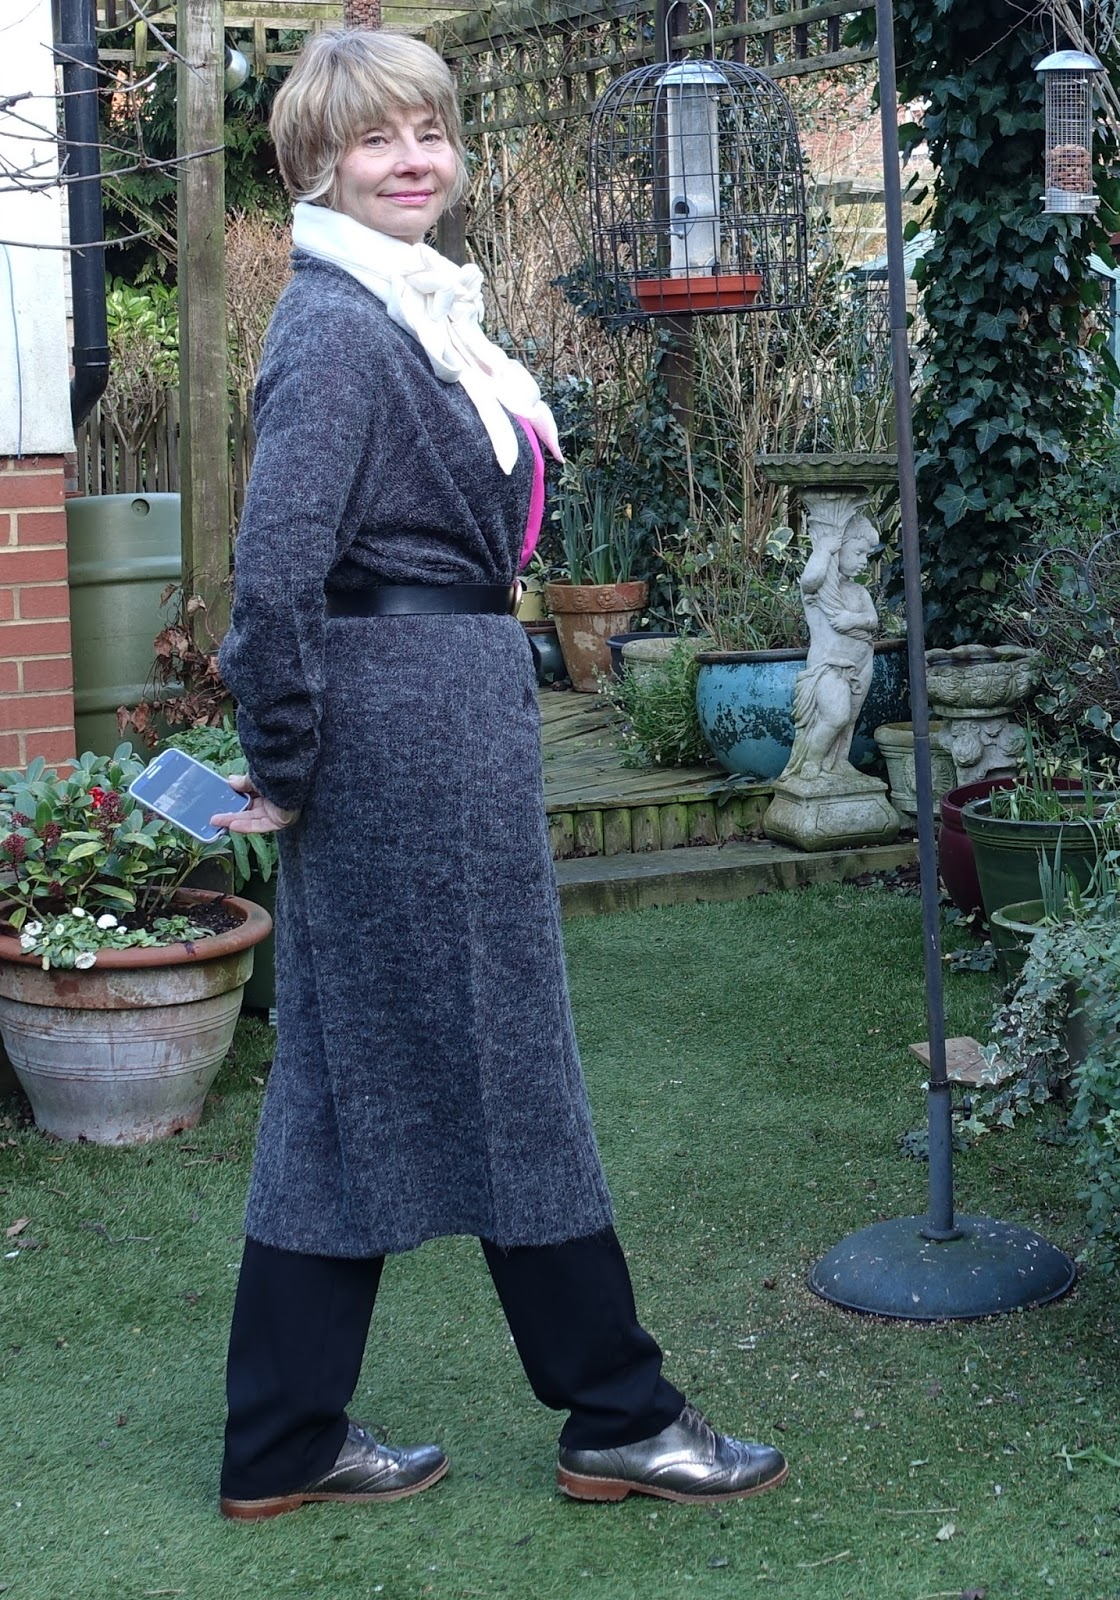 Image showing a middle aged fashionista wearing a belted long line cardigan in  grey worn over black trousers and metallic brogues. A cream fleecy scarf adds interest.